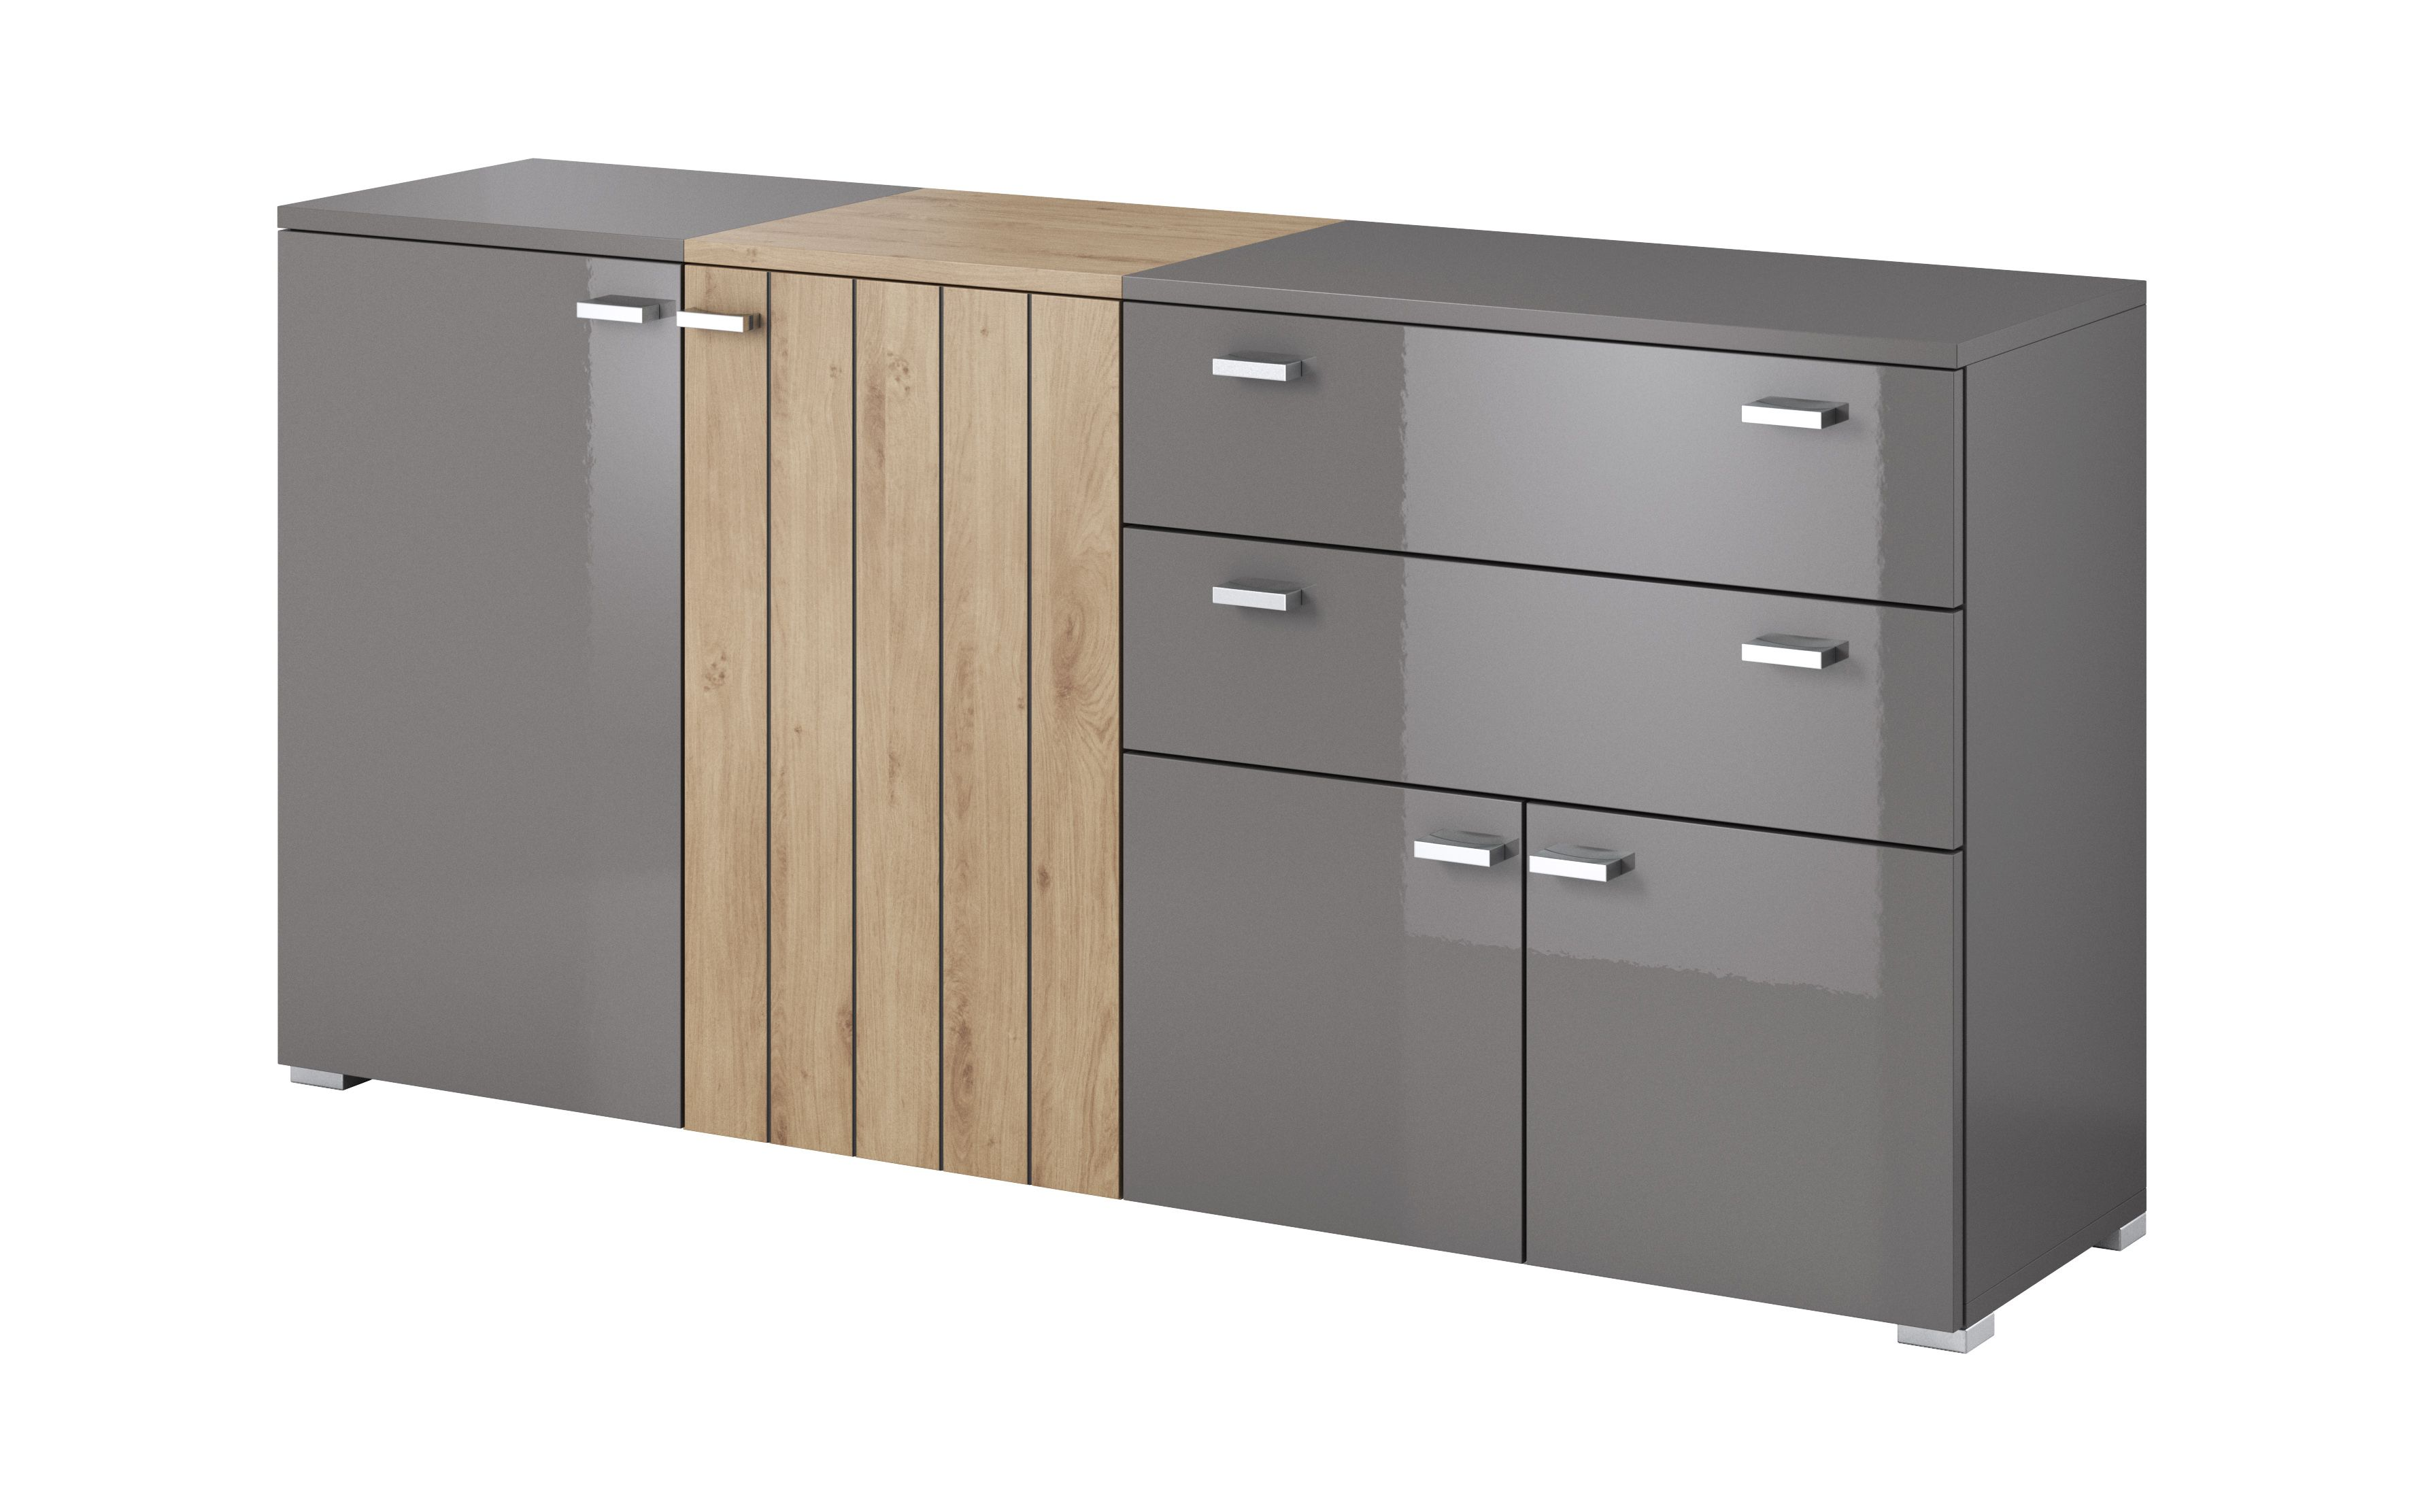 Montreal SB4 | Commode pas cher, Commodes et Commode moderne